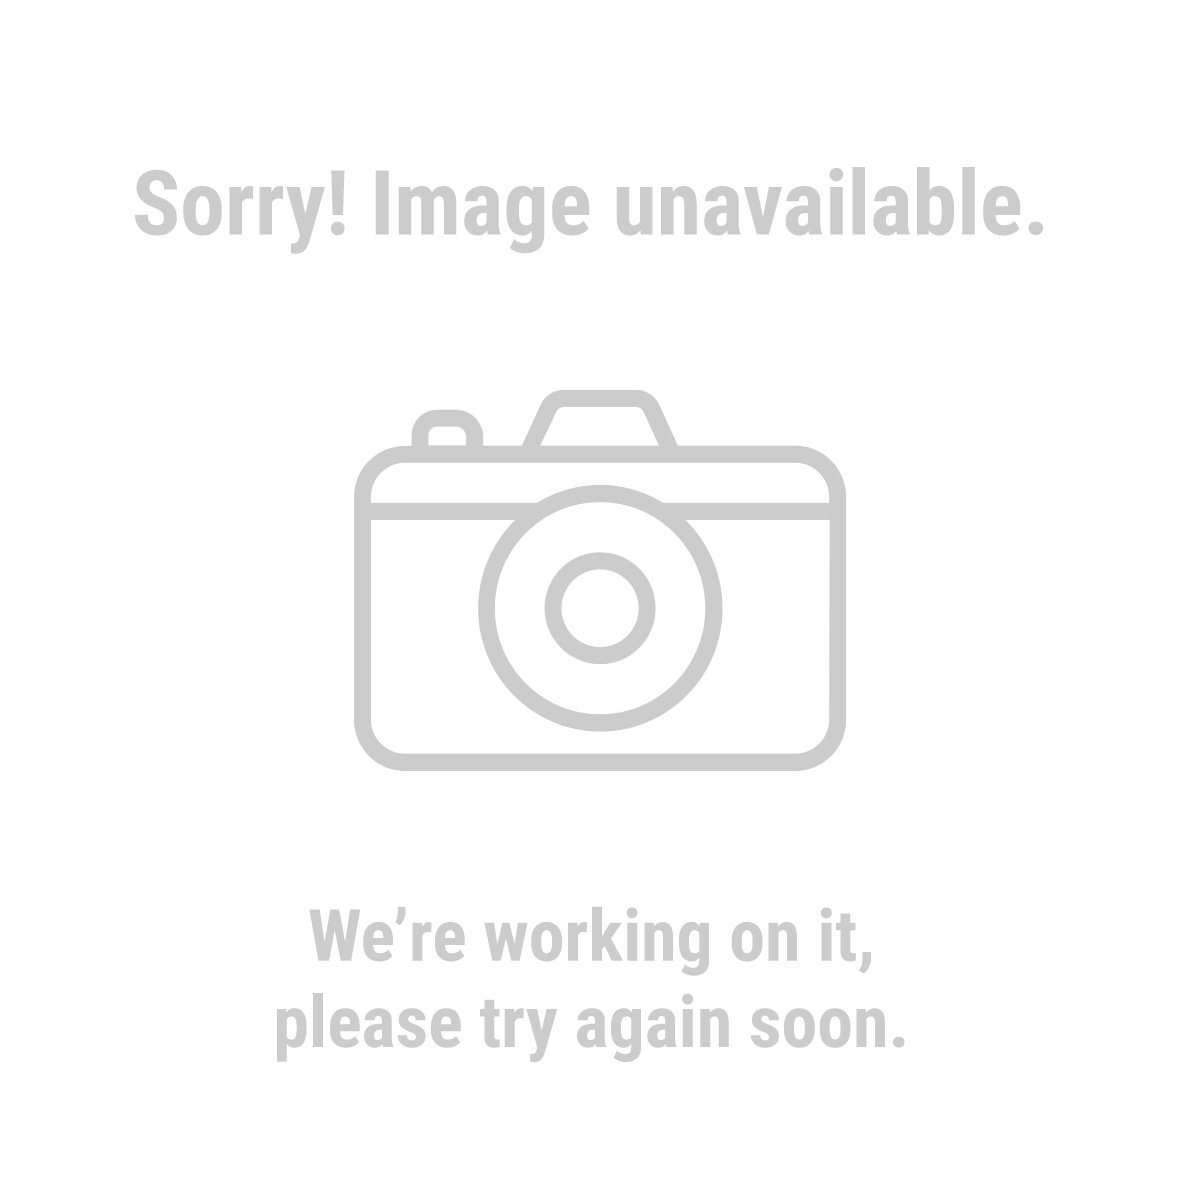 Storehouse 67134 Large Clear Stacking Bin